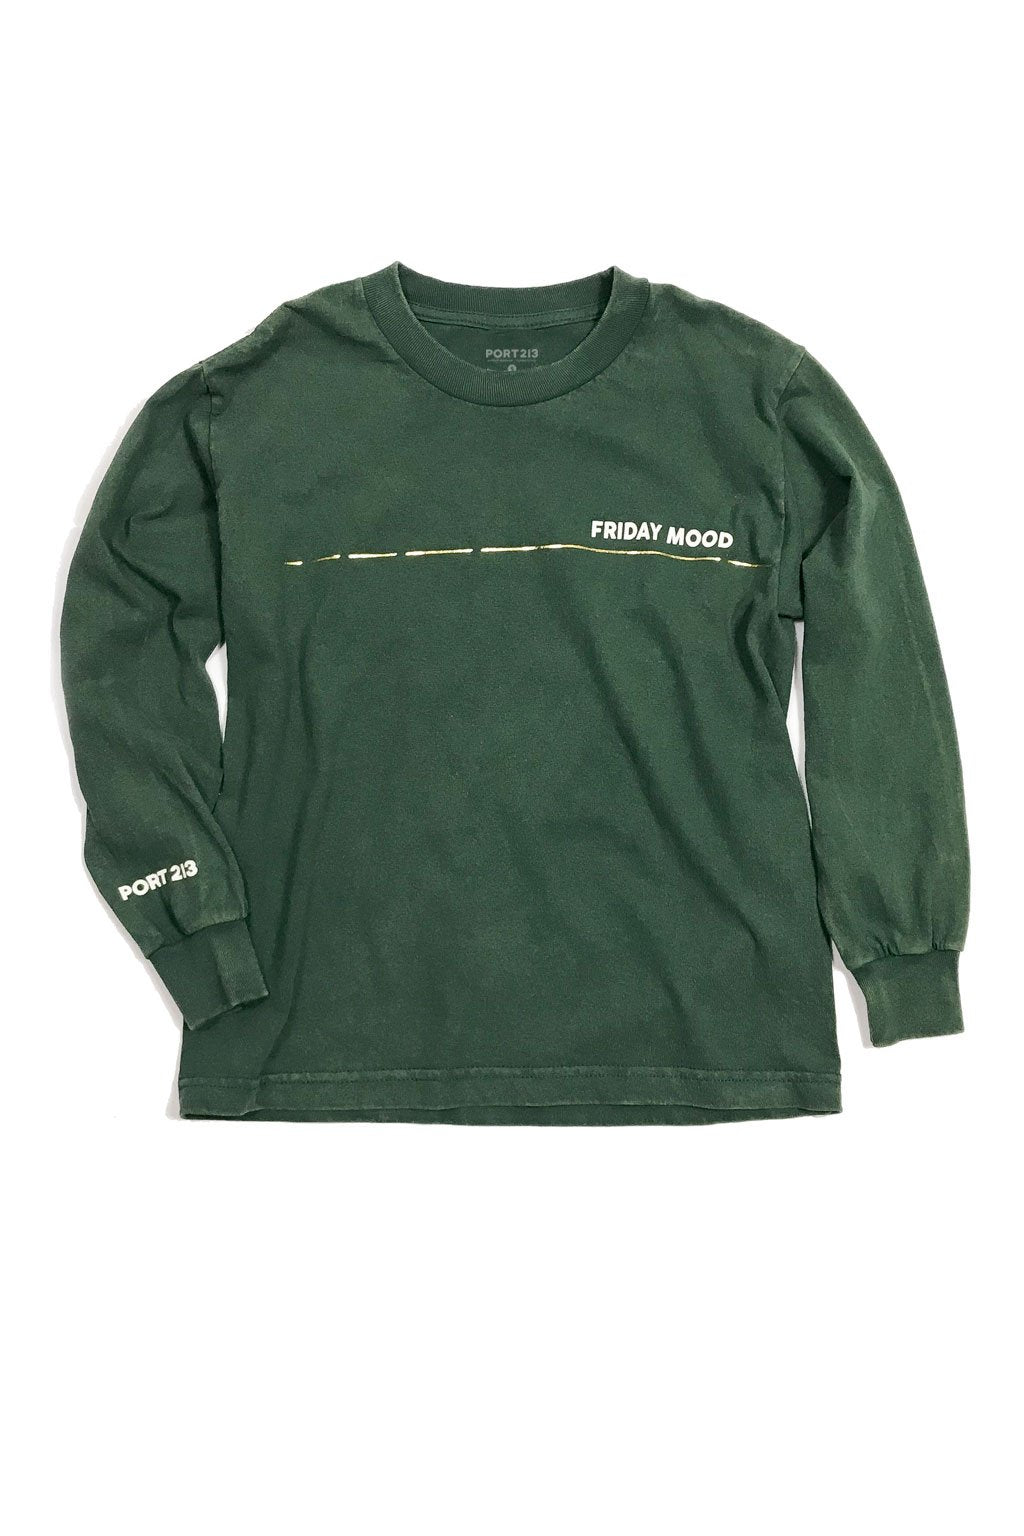 Green Friday Mood Long Sleeve T-shirt - Port 213.com